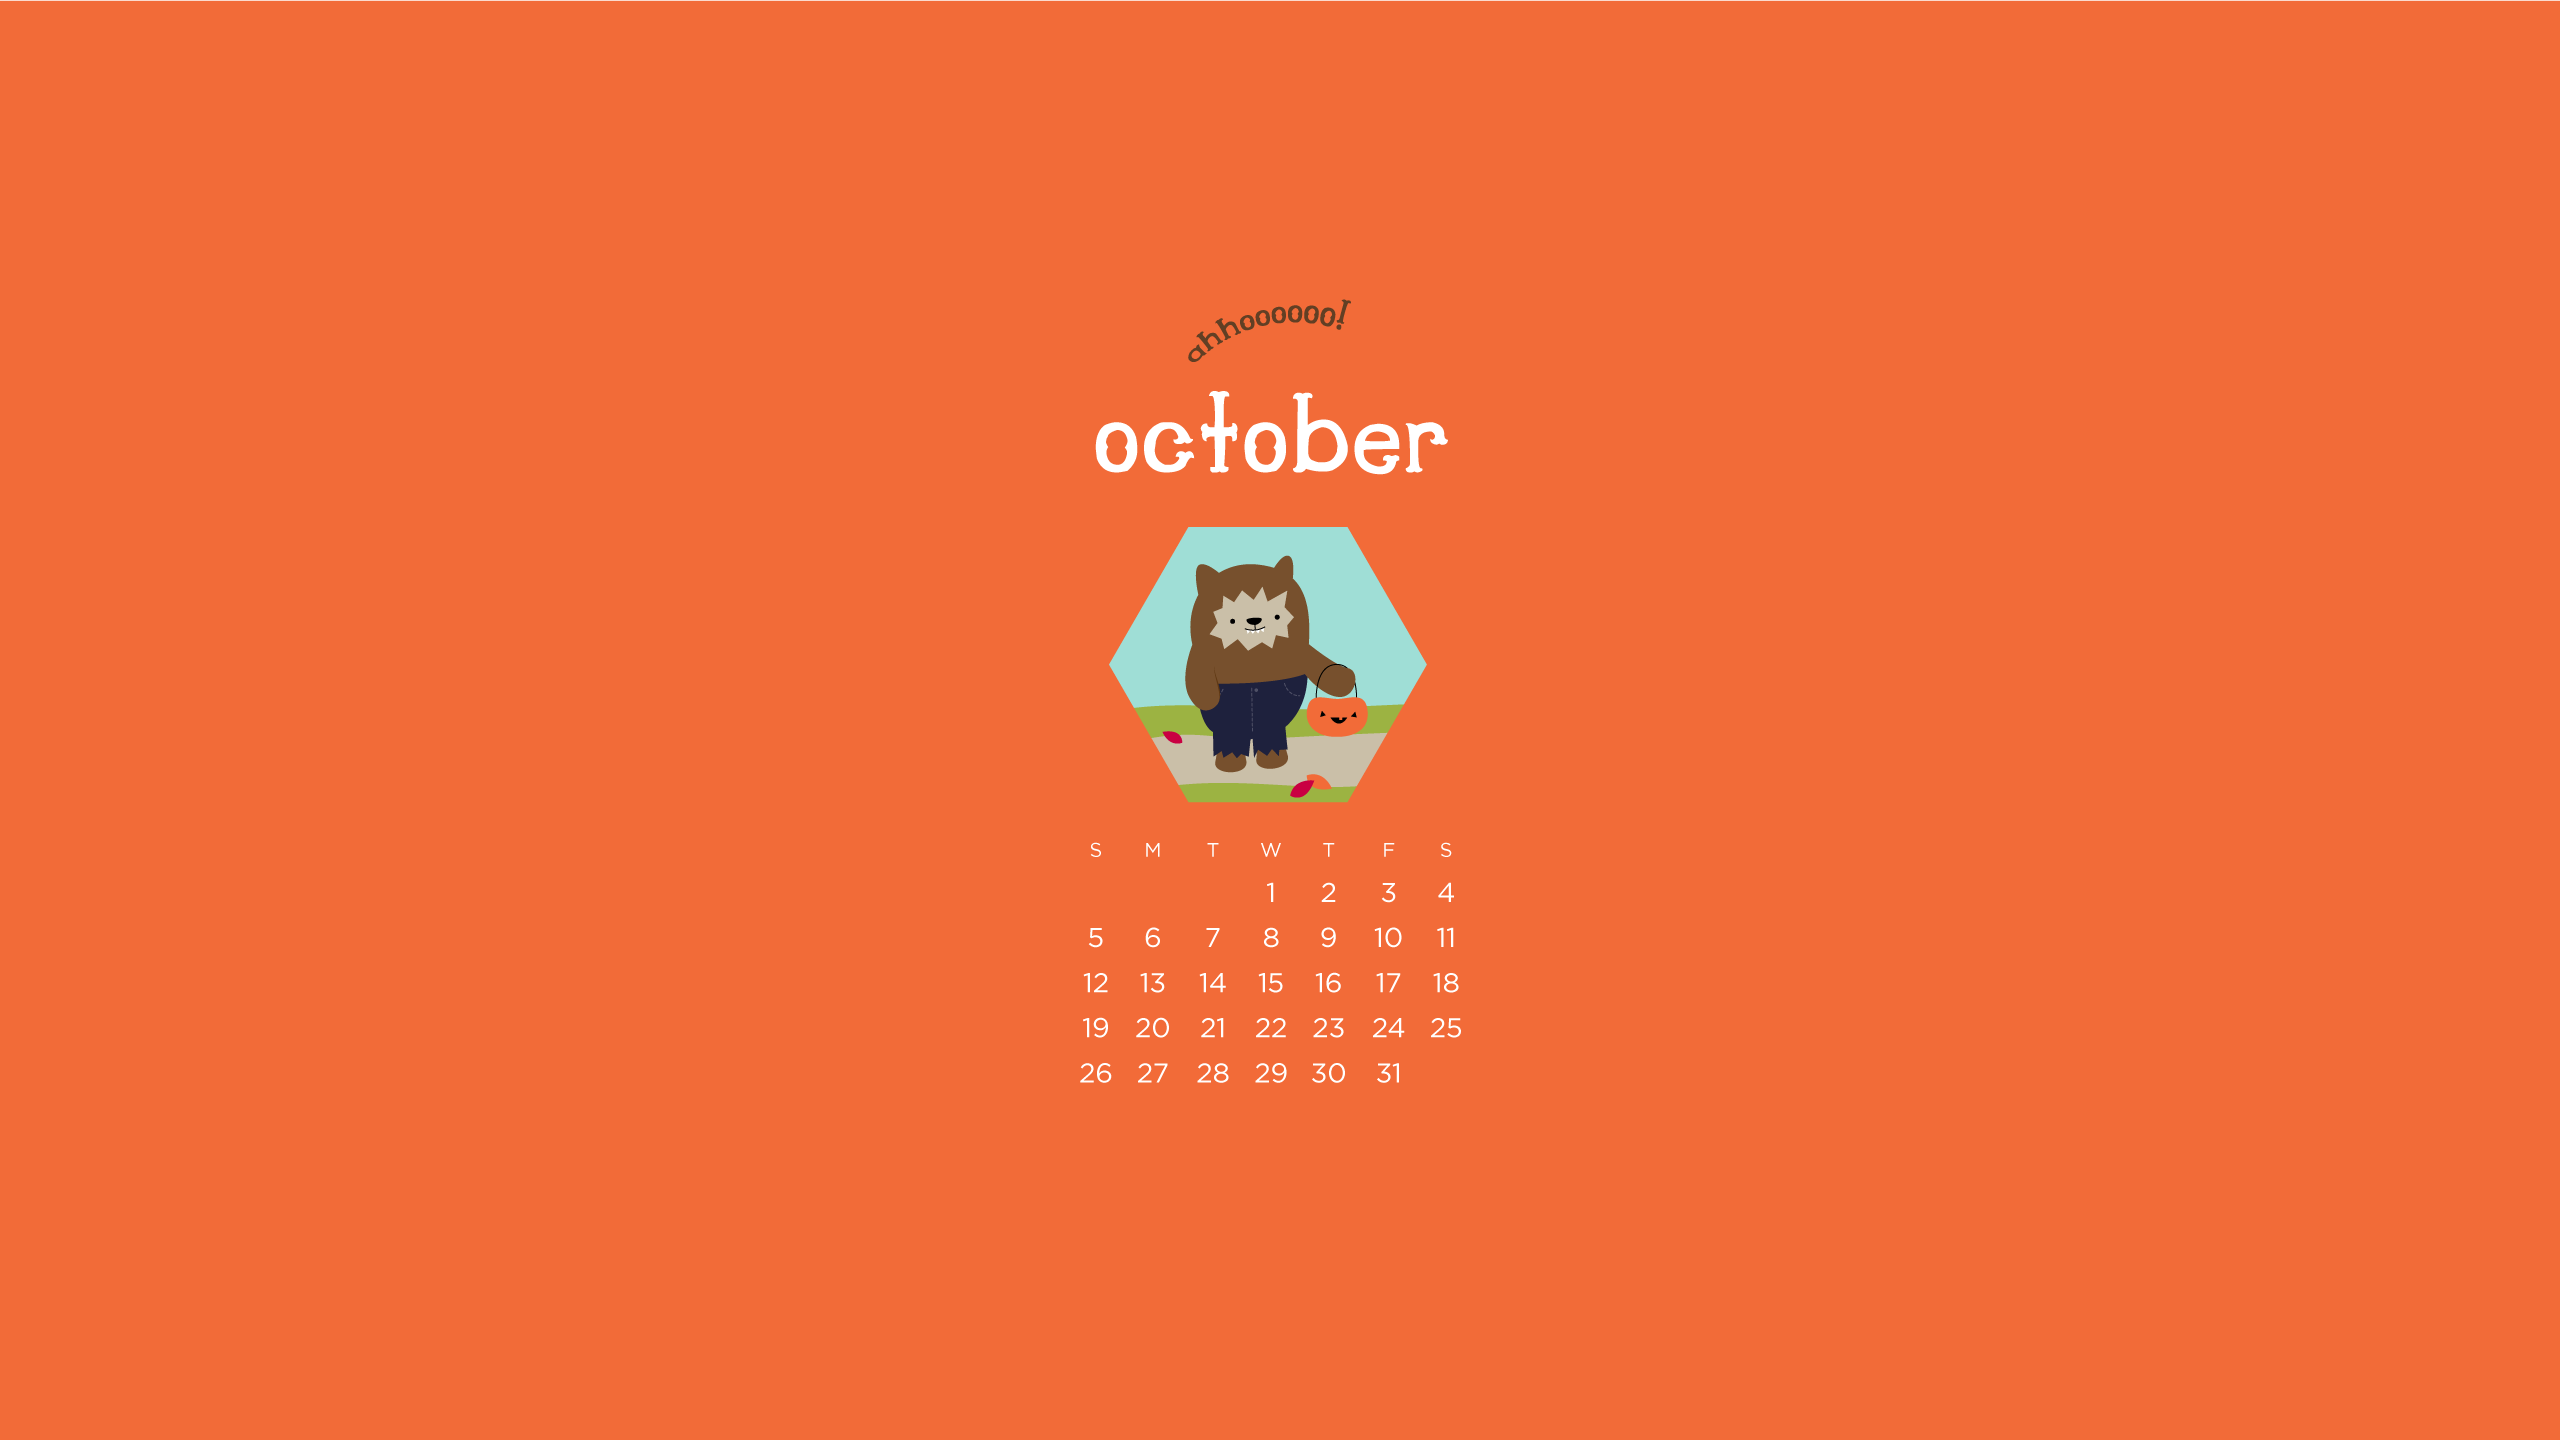 14 2015 By admin Comments Off on October 2015 Calendar Wallpapers 2560x1440